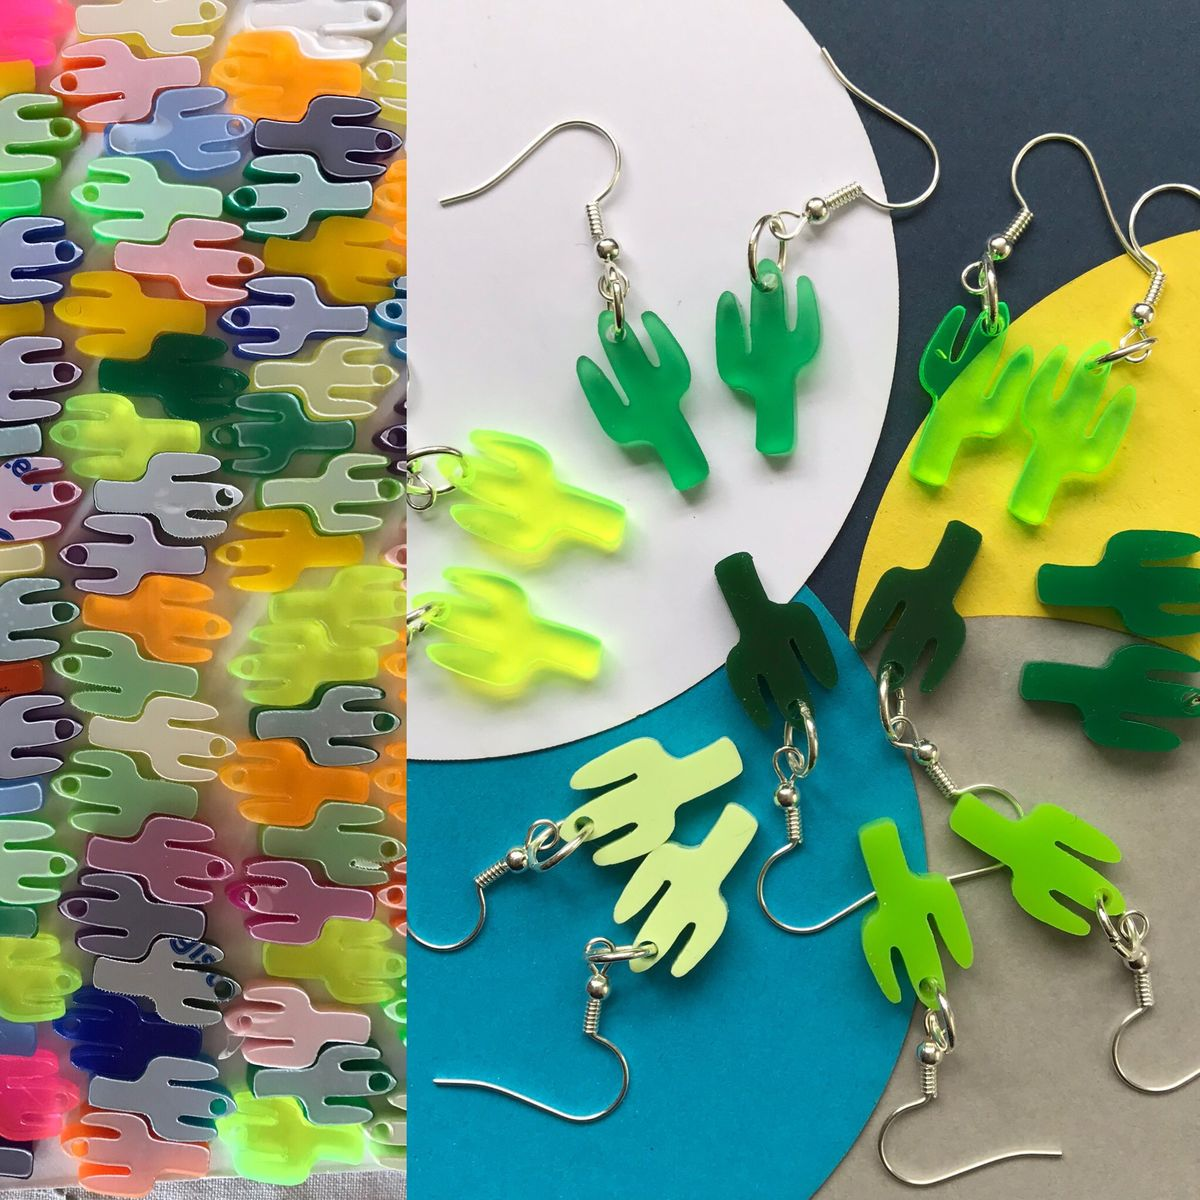 20 acrylic cactus charms for jewellery making - product images  of